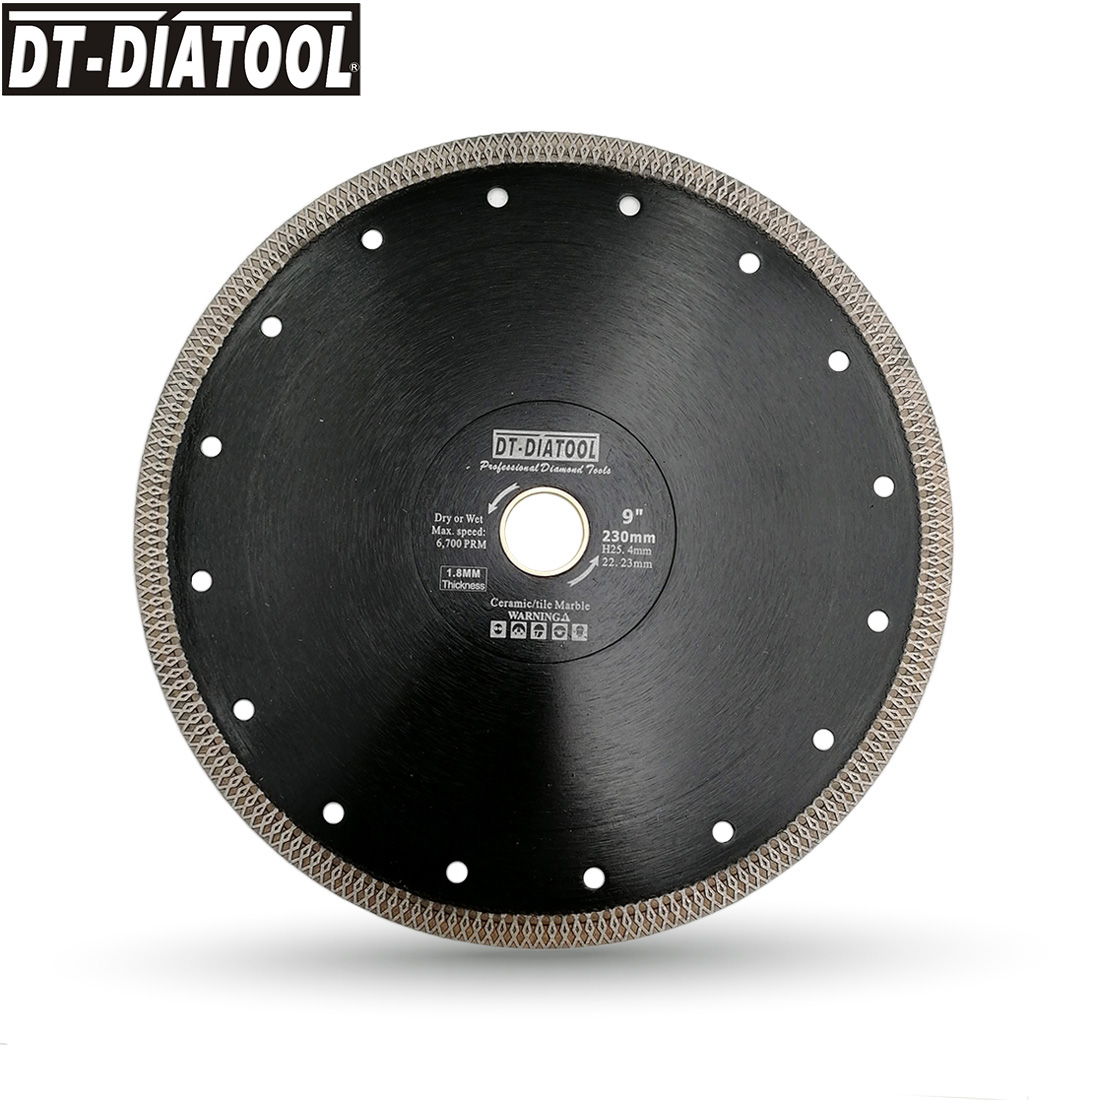 DT-DIATOOL 1pc Dia 230mm/9inch Hot-pressed Diamond Cutting Disc X Mesh Turbo Saw Blade For Cutting Porcelain Ceramic Tile Marble